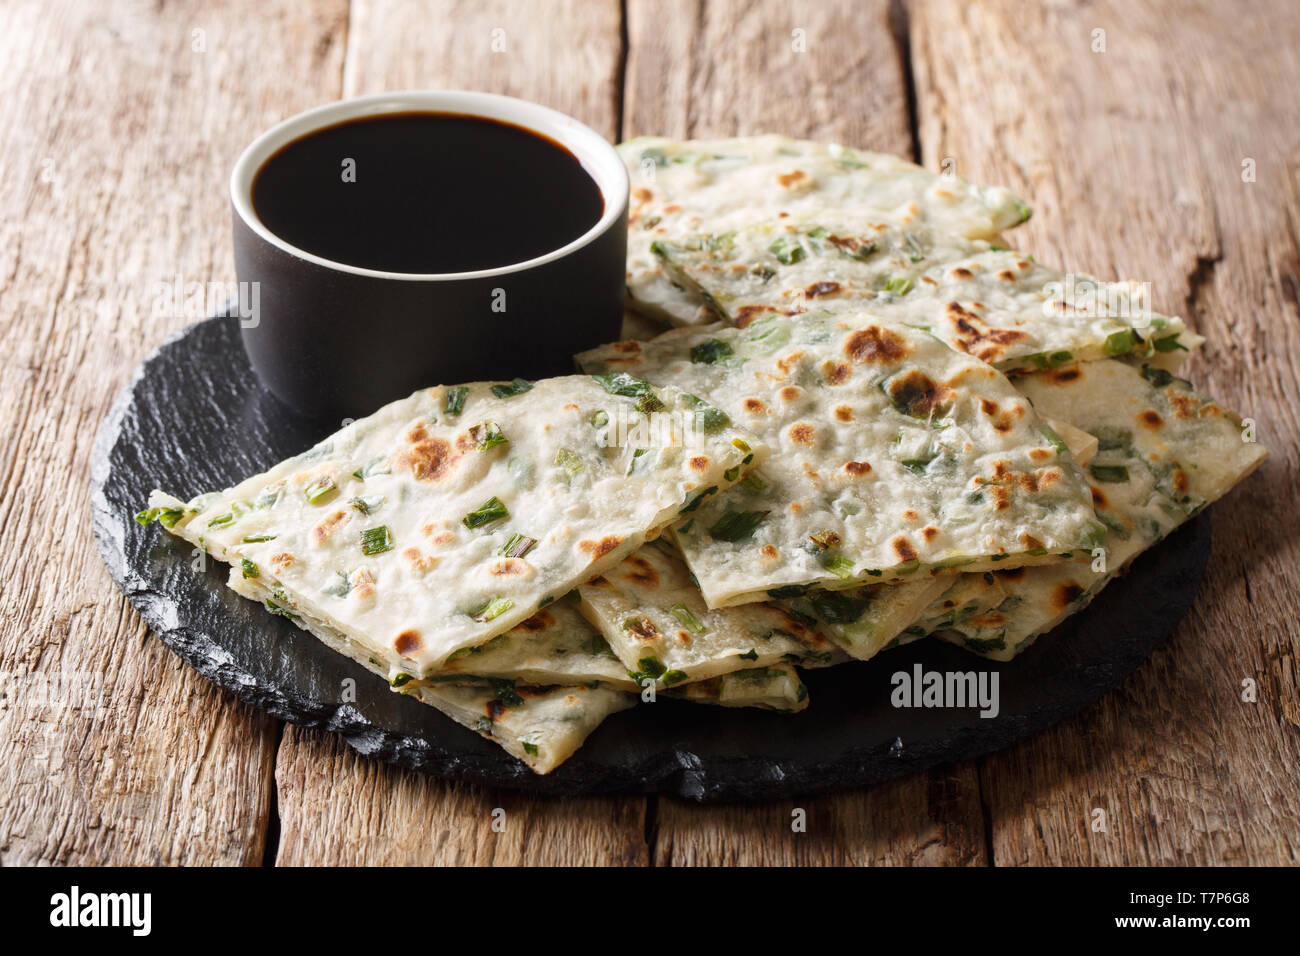 simple recipe for Chinese fried onion pancakes served with sauce close-up on a board. Horizontal - Stock Image